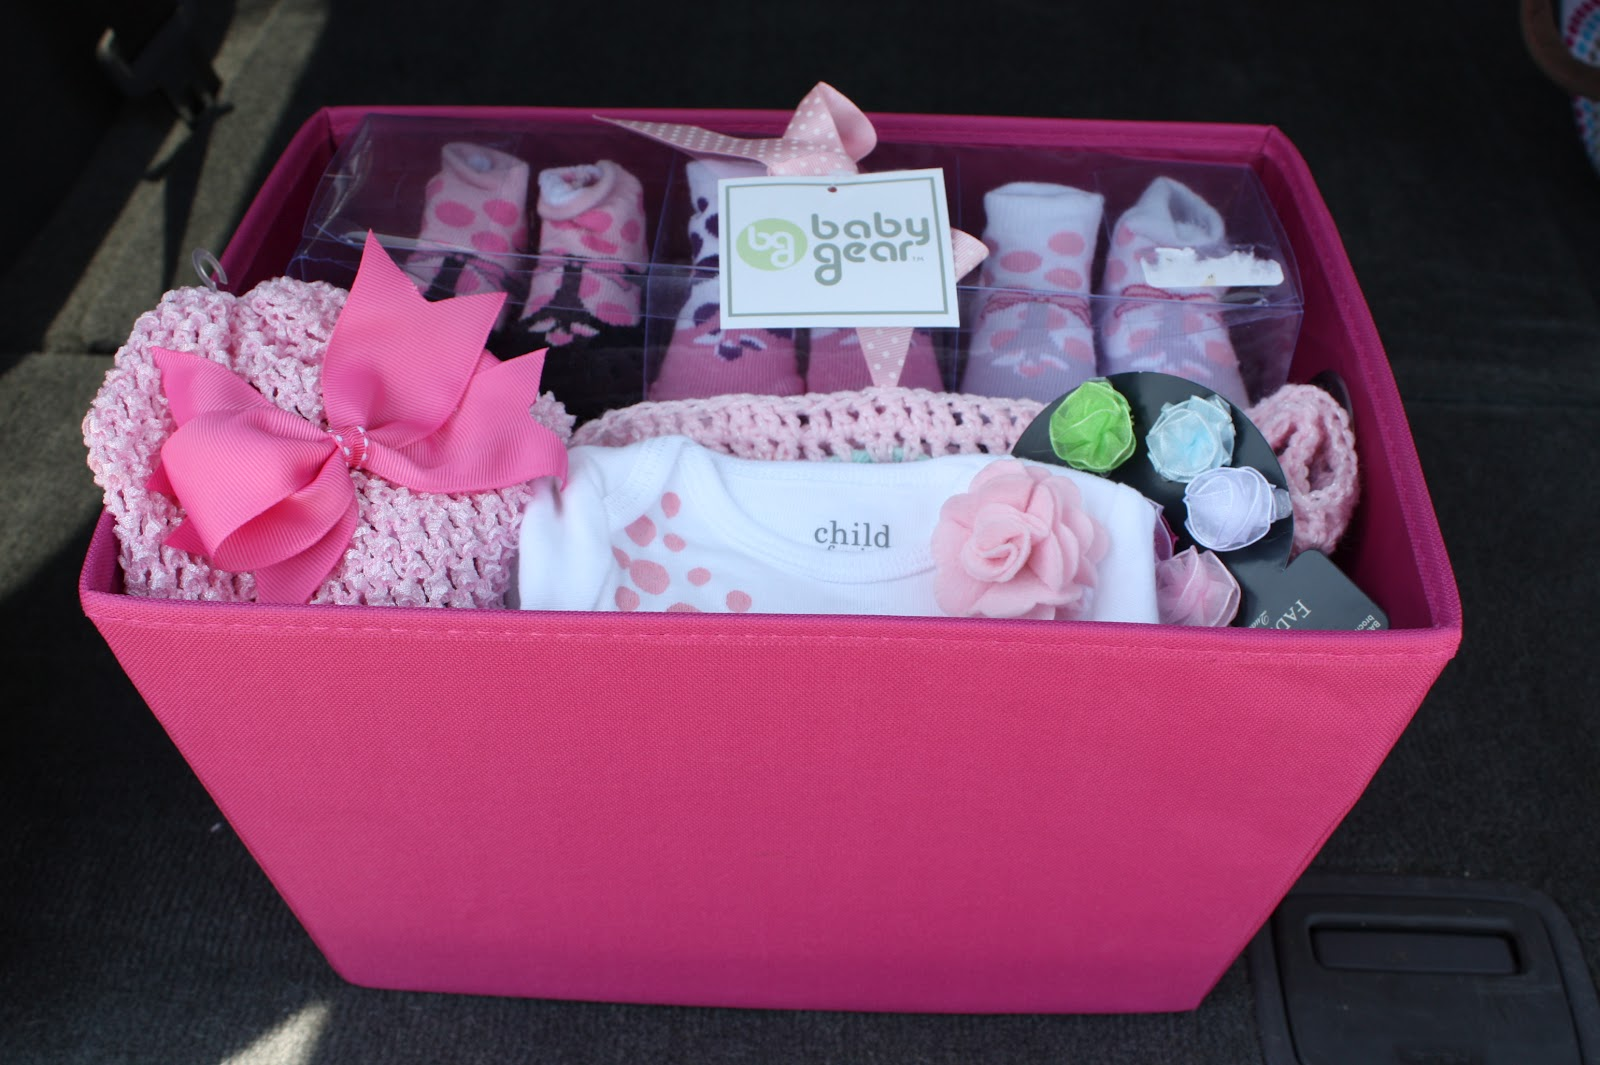 A Crafty Escape: Baby Shower Gifts